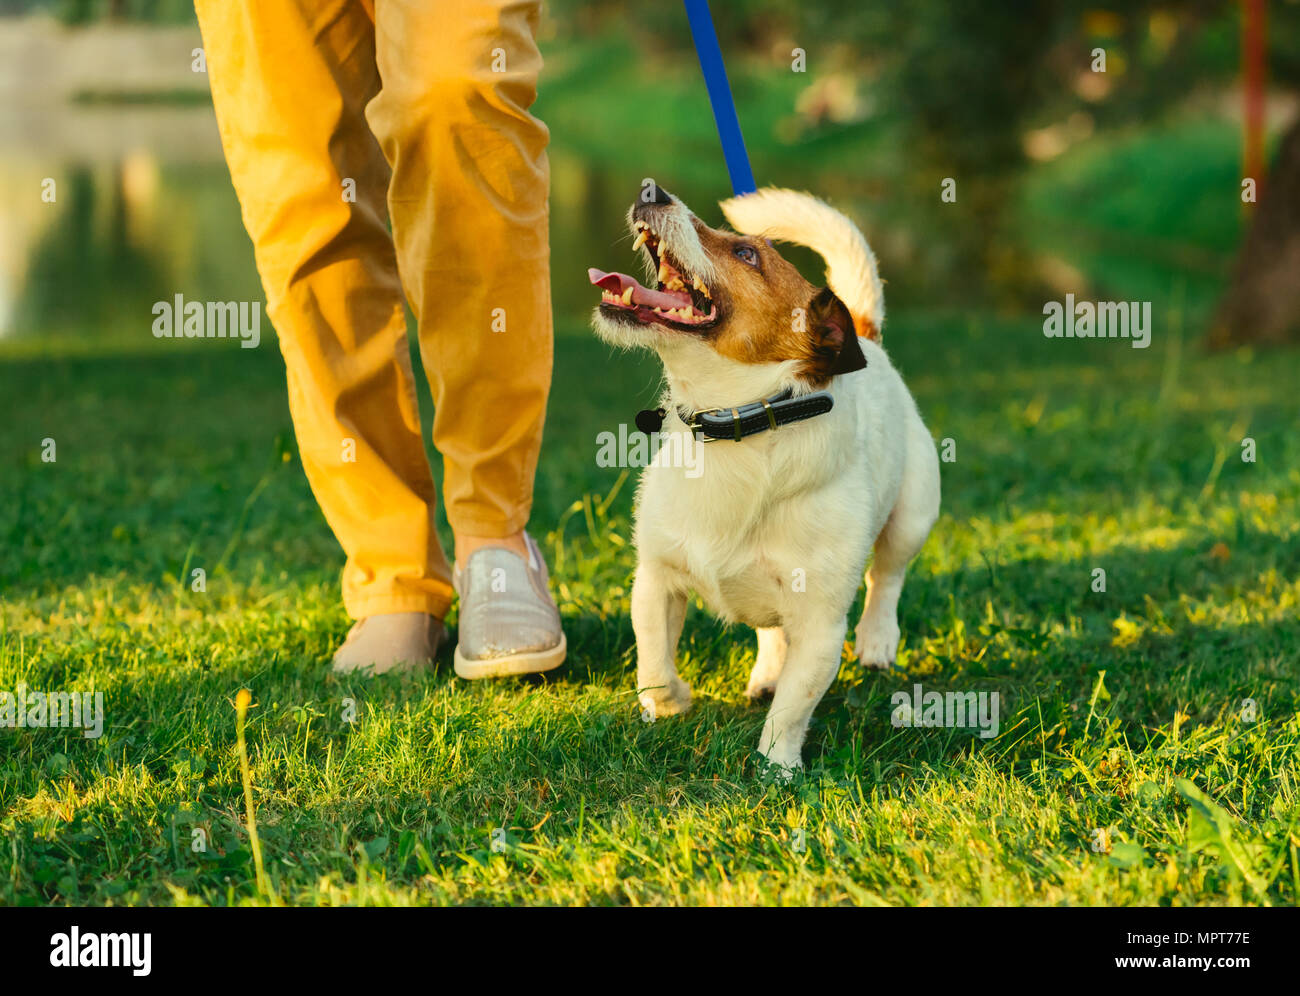 Dog walking on leash with woman during  evening stroll at park - Stock Image